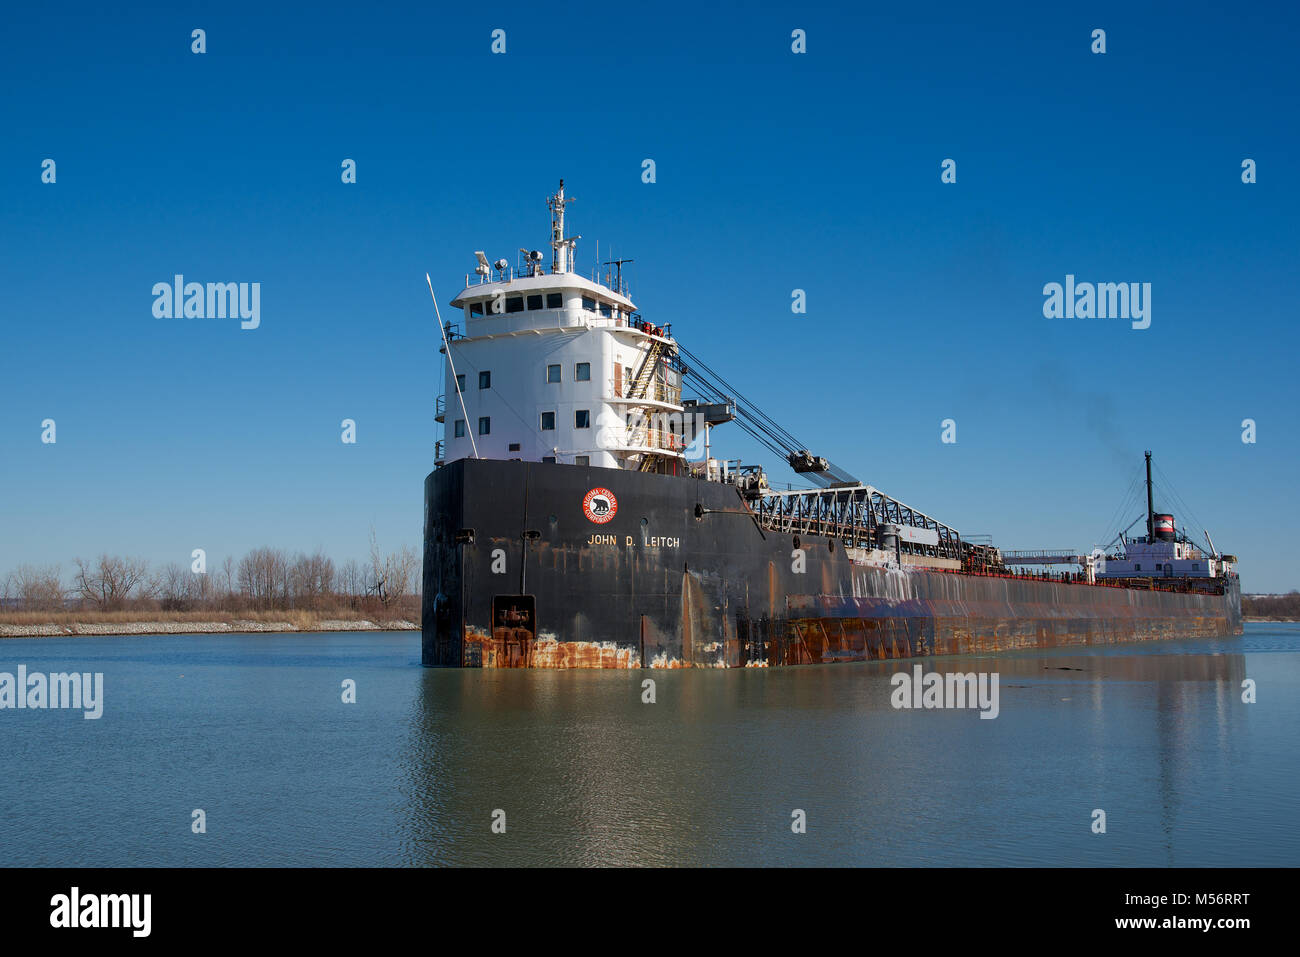 The John D. Leitch bulk carrier passing through the Welland Canal - Stock Image